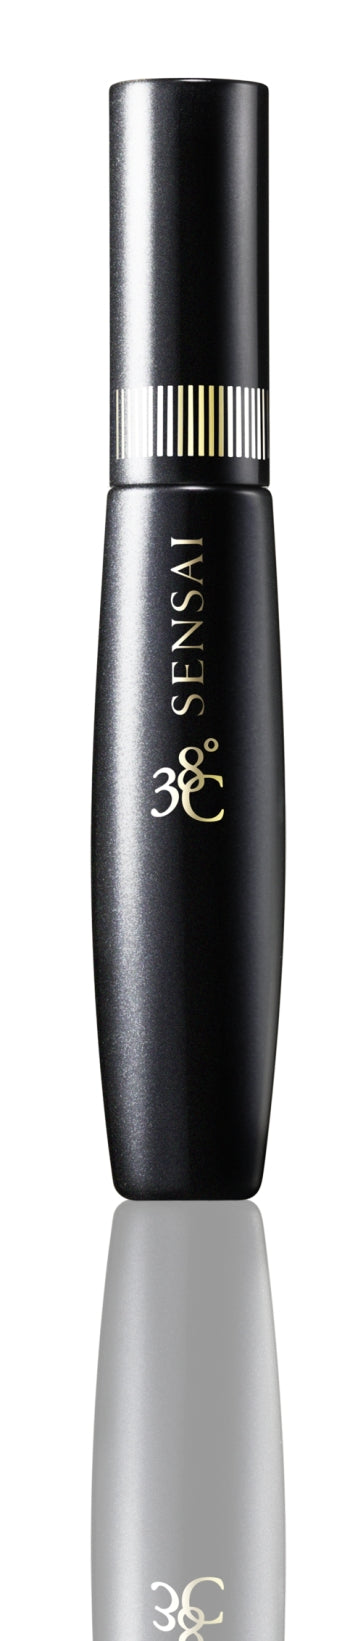 Mascara 38°C Voluminising  MV1 Black